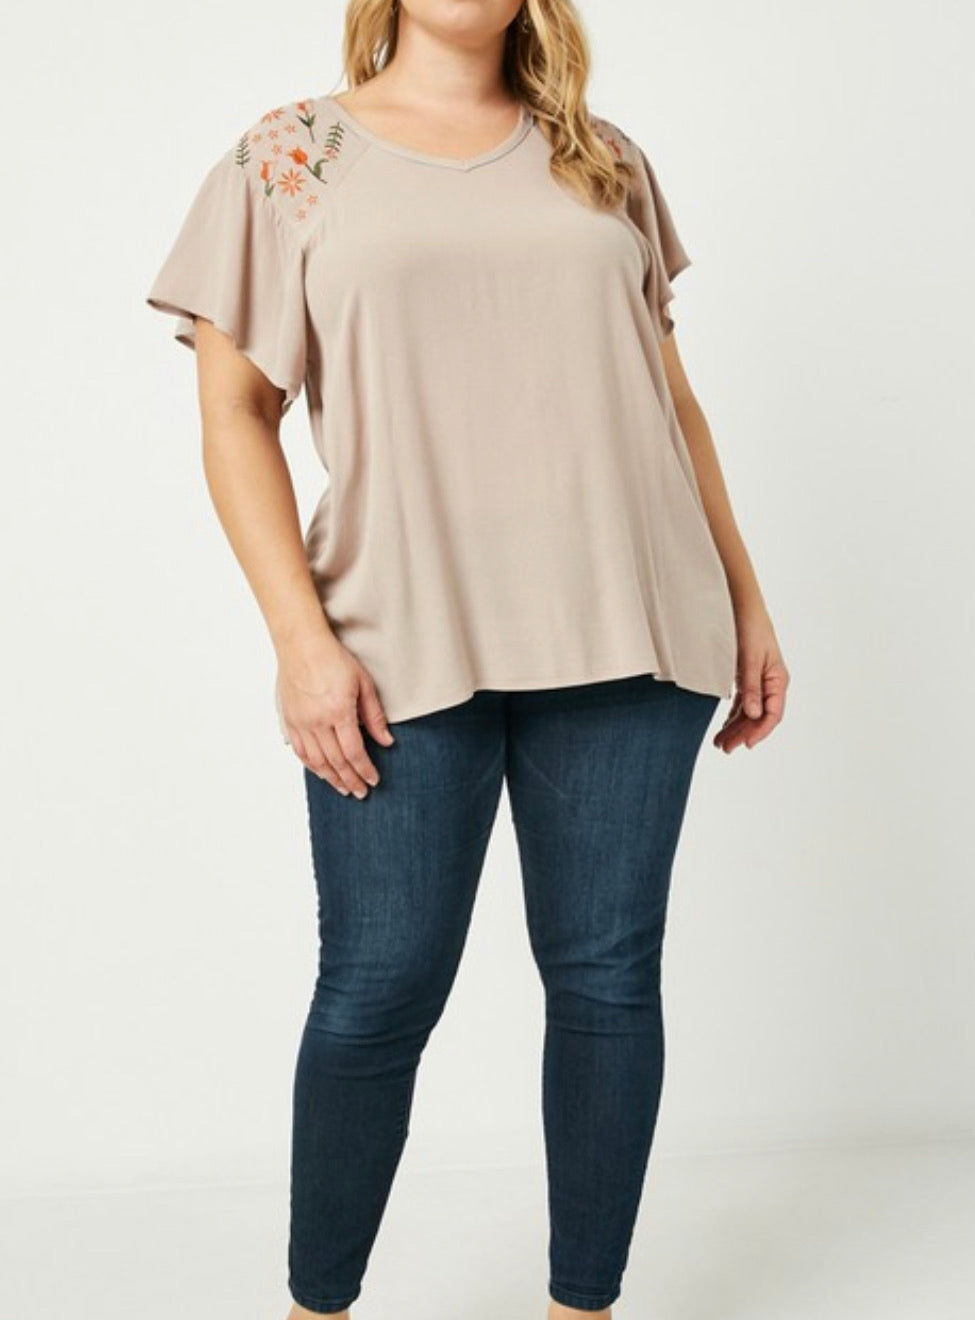 PLUS - Today Is the Day Floral Sleeve Top - Beige